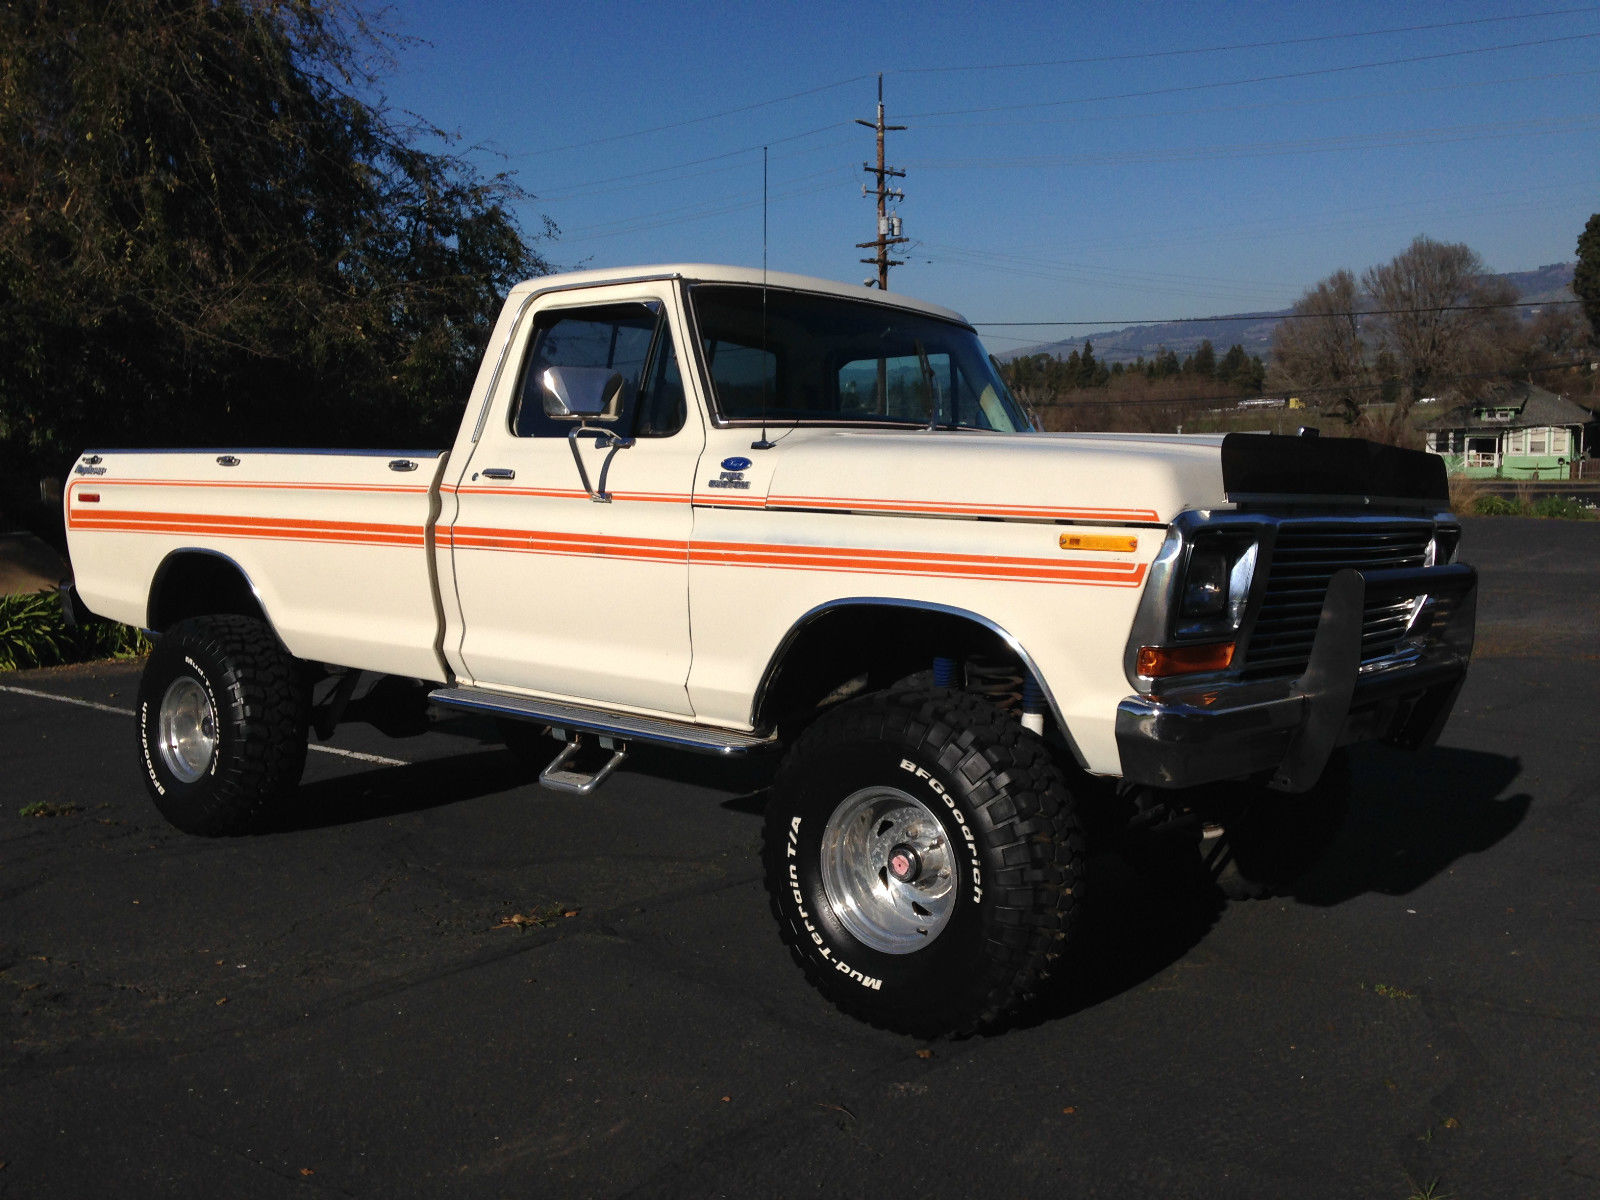 1979 ford f 150 4x4 explorer lifted longbed pickup very nice classic ford f 150 1979. Black Bedroom Furniture Sets. Home Design Ideas